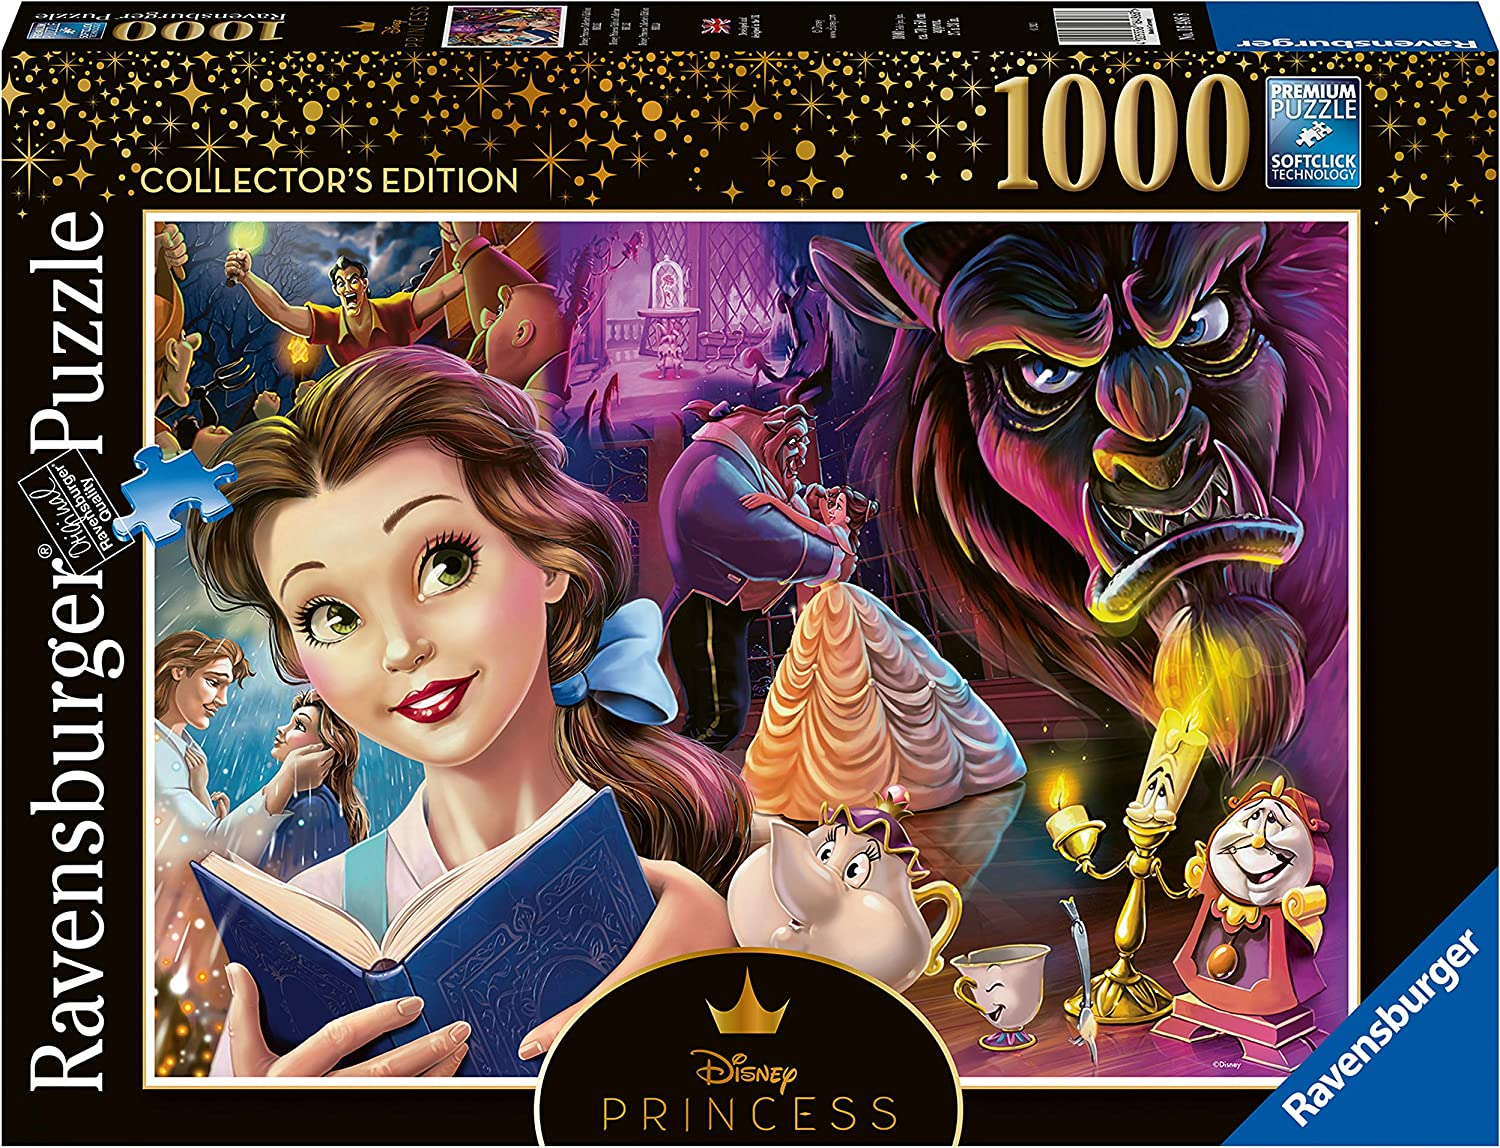 Ravensburger 16486 Belle - Heroines Collection - 1000 PC Puzzles for Adults – Every Piece is Unique, Softclick Technology Means Pieces Fit Together Perfectly